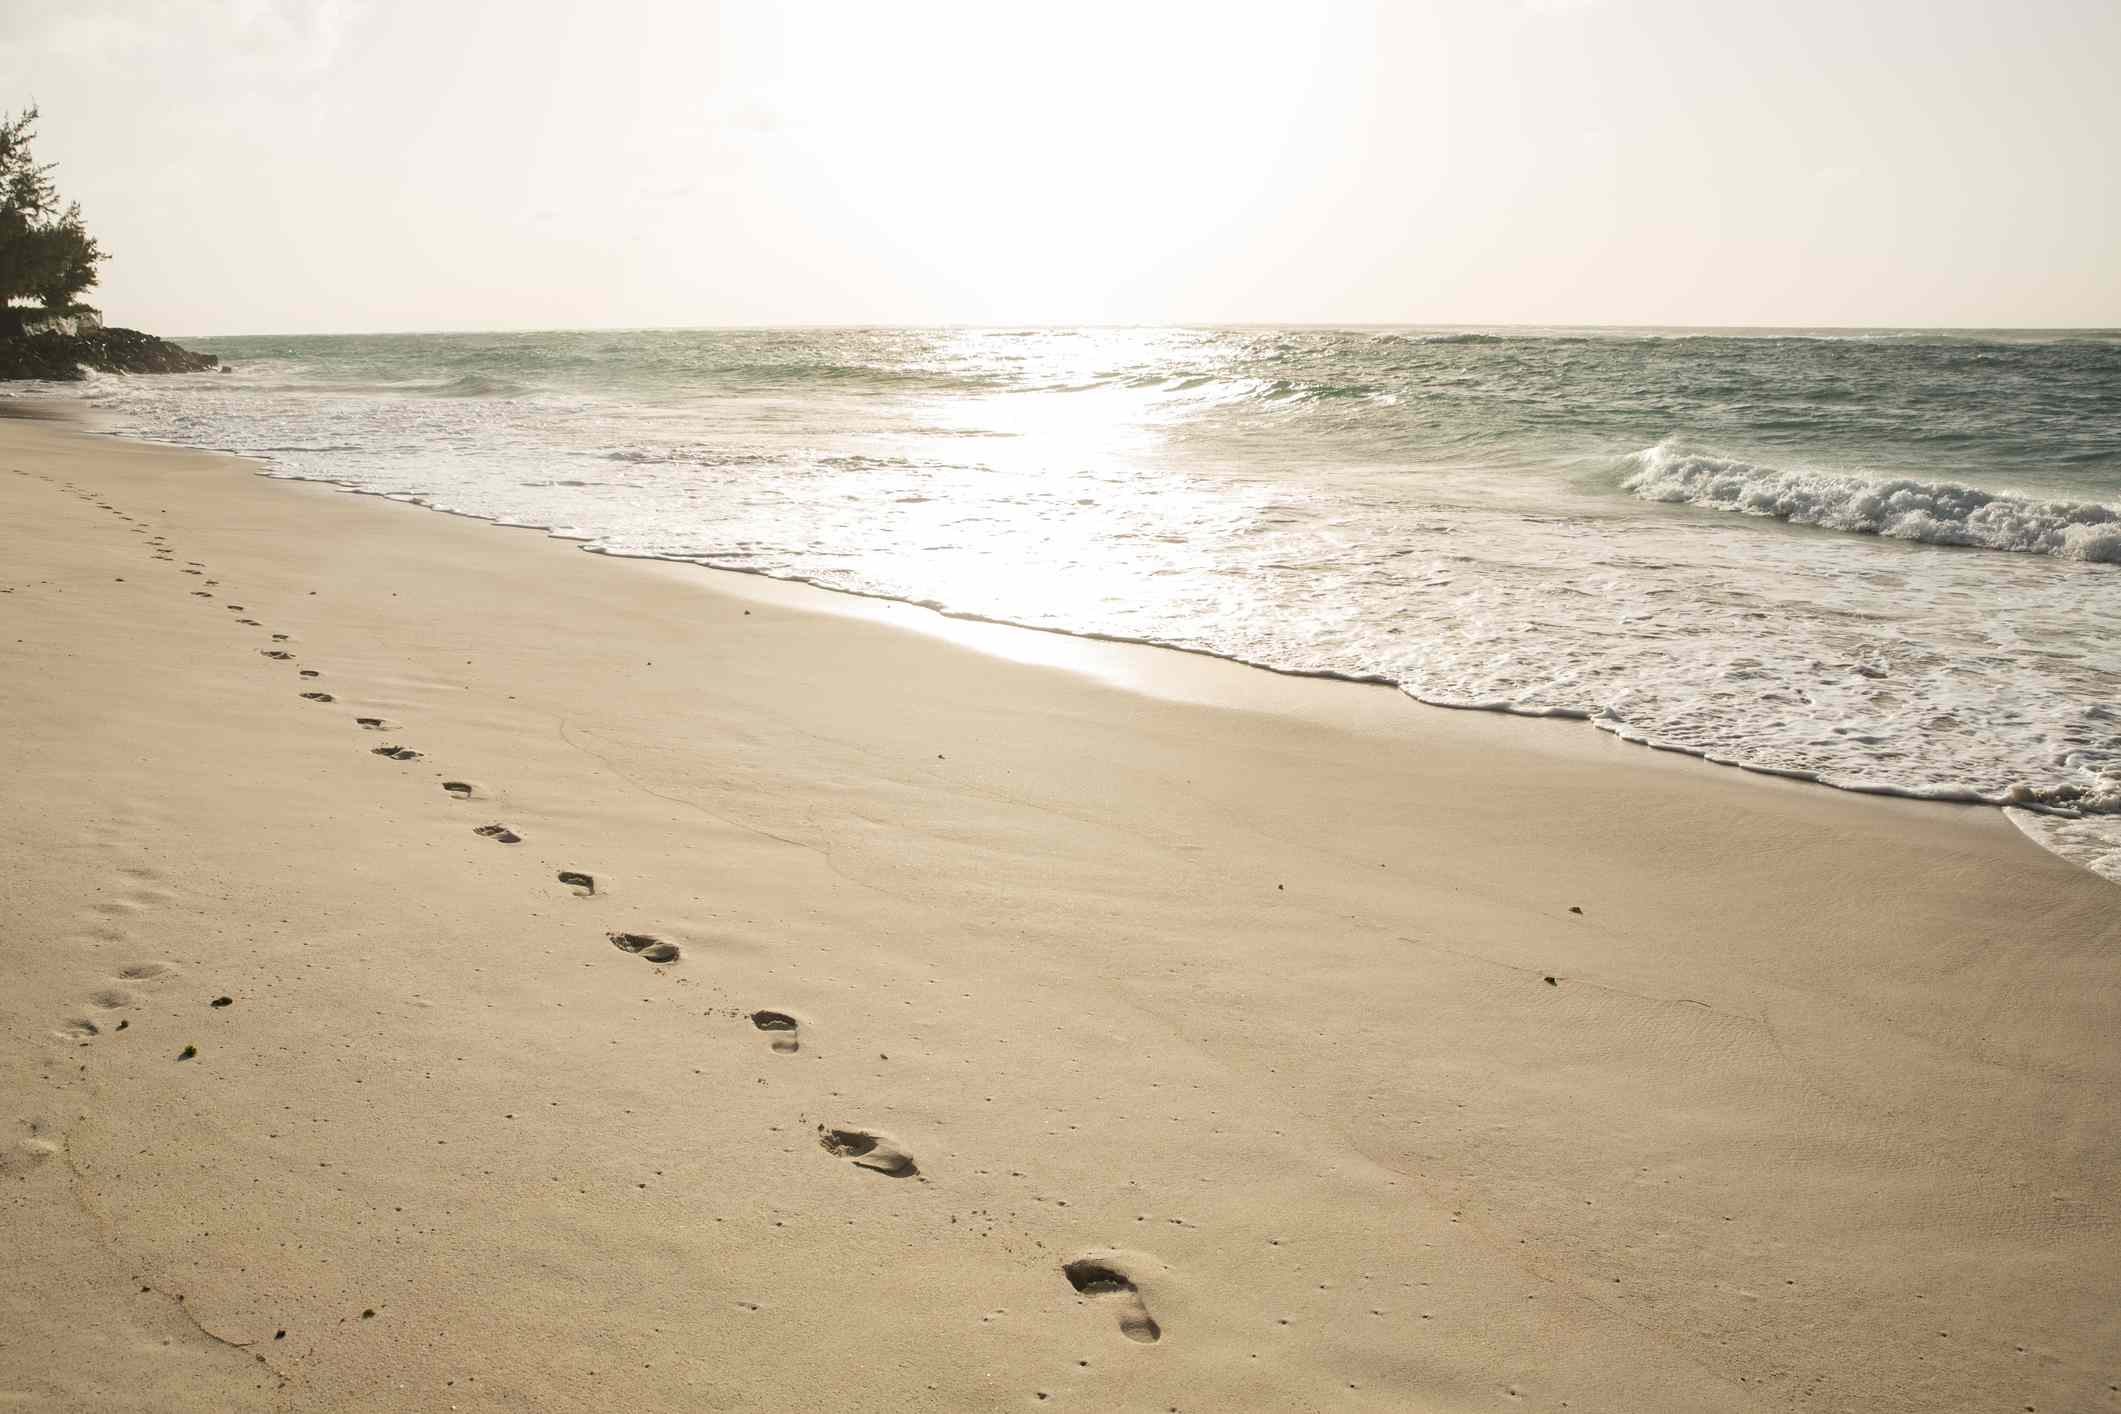 Silver Sands Beach with footsteps in the sand